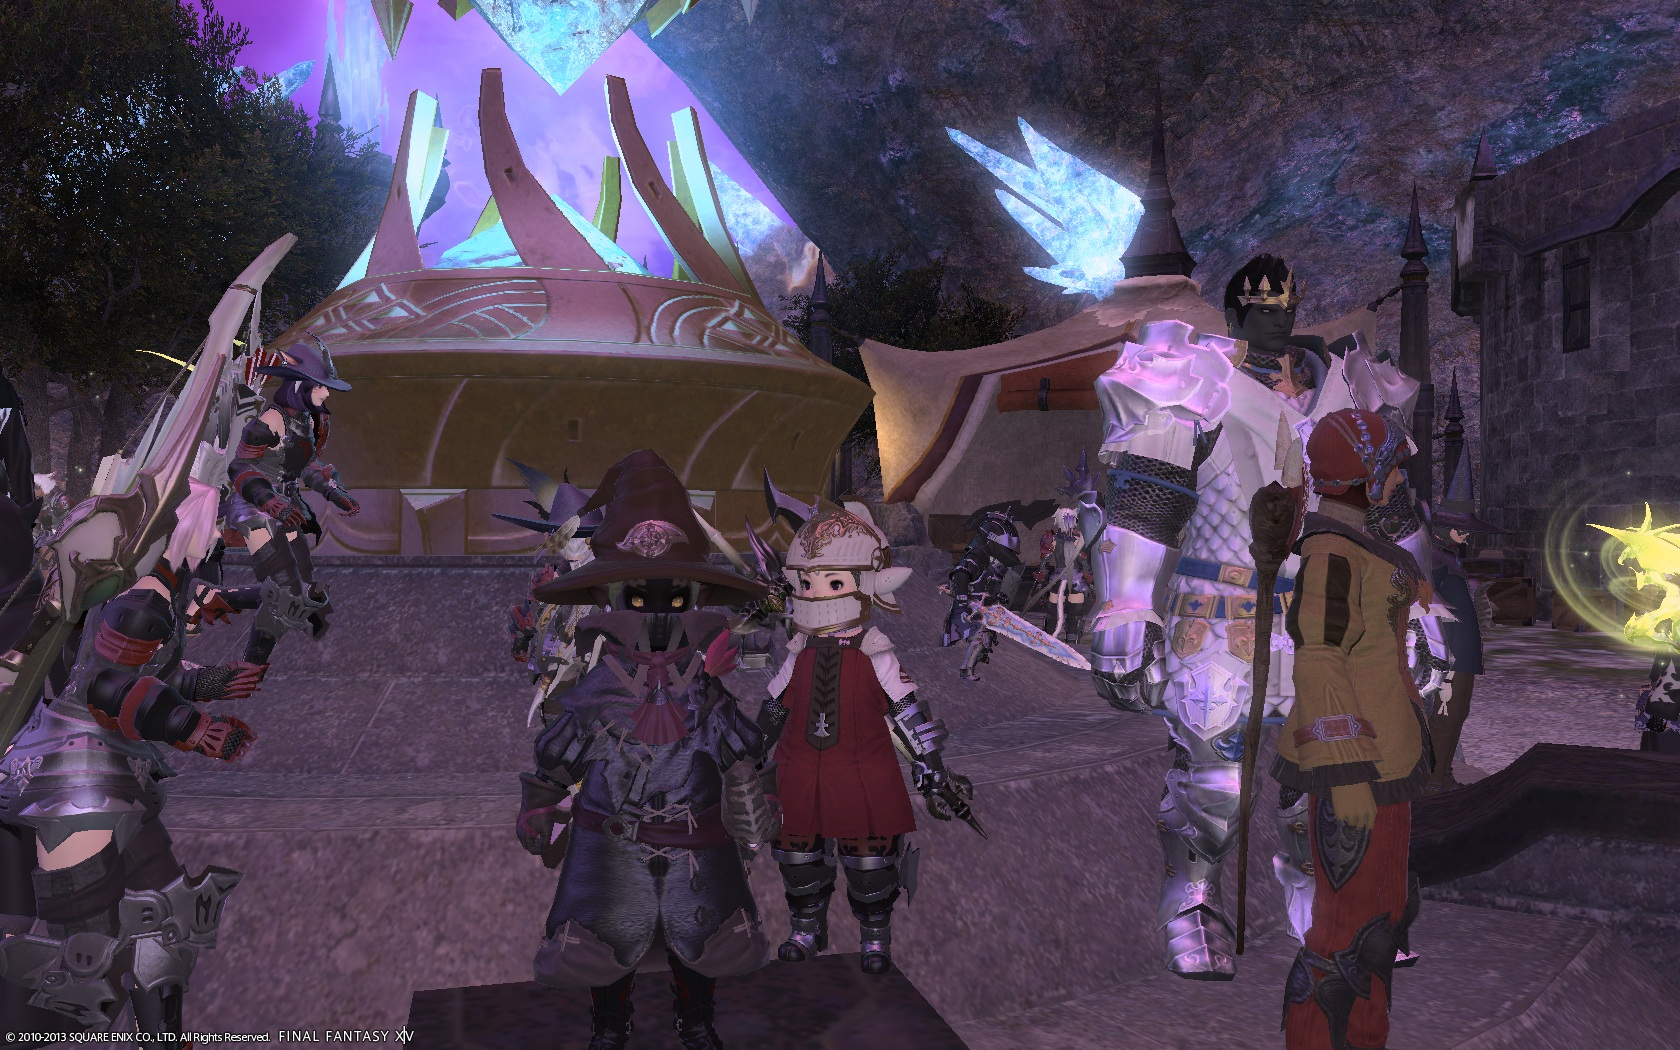 elcura ffxiv know ears really this used shitpost with just like deal forum over month entire grind inb4 lala thread picture cute lalafell coming that fate posting soon